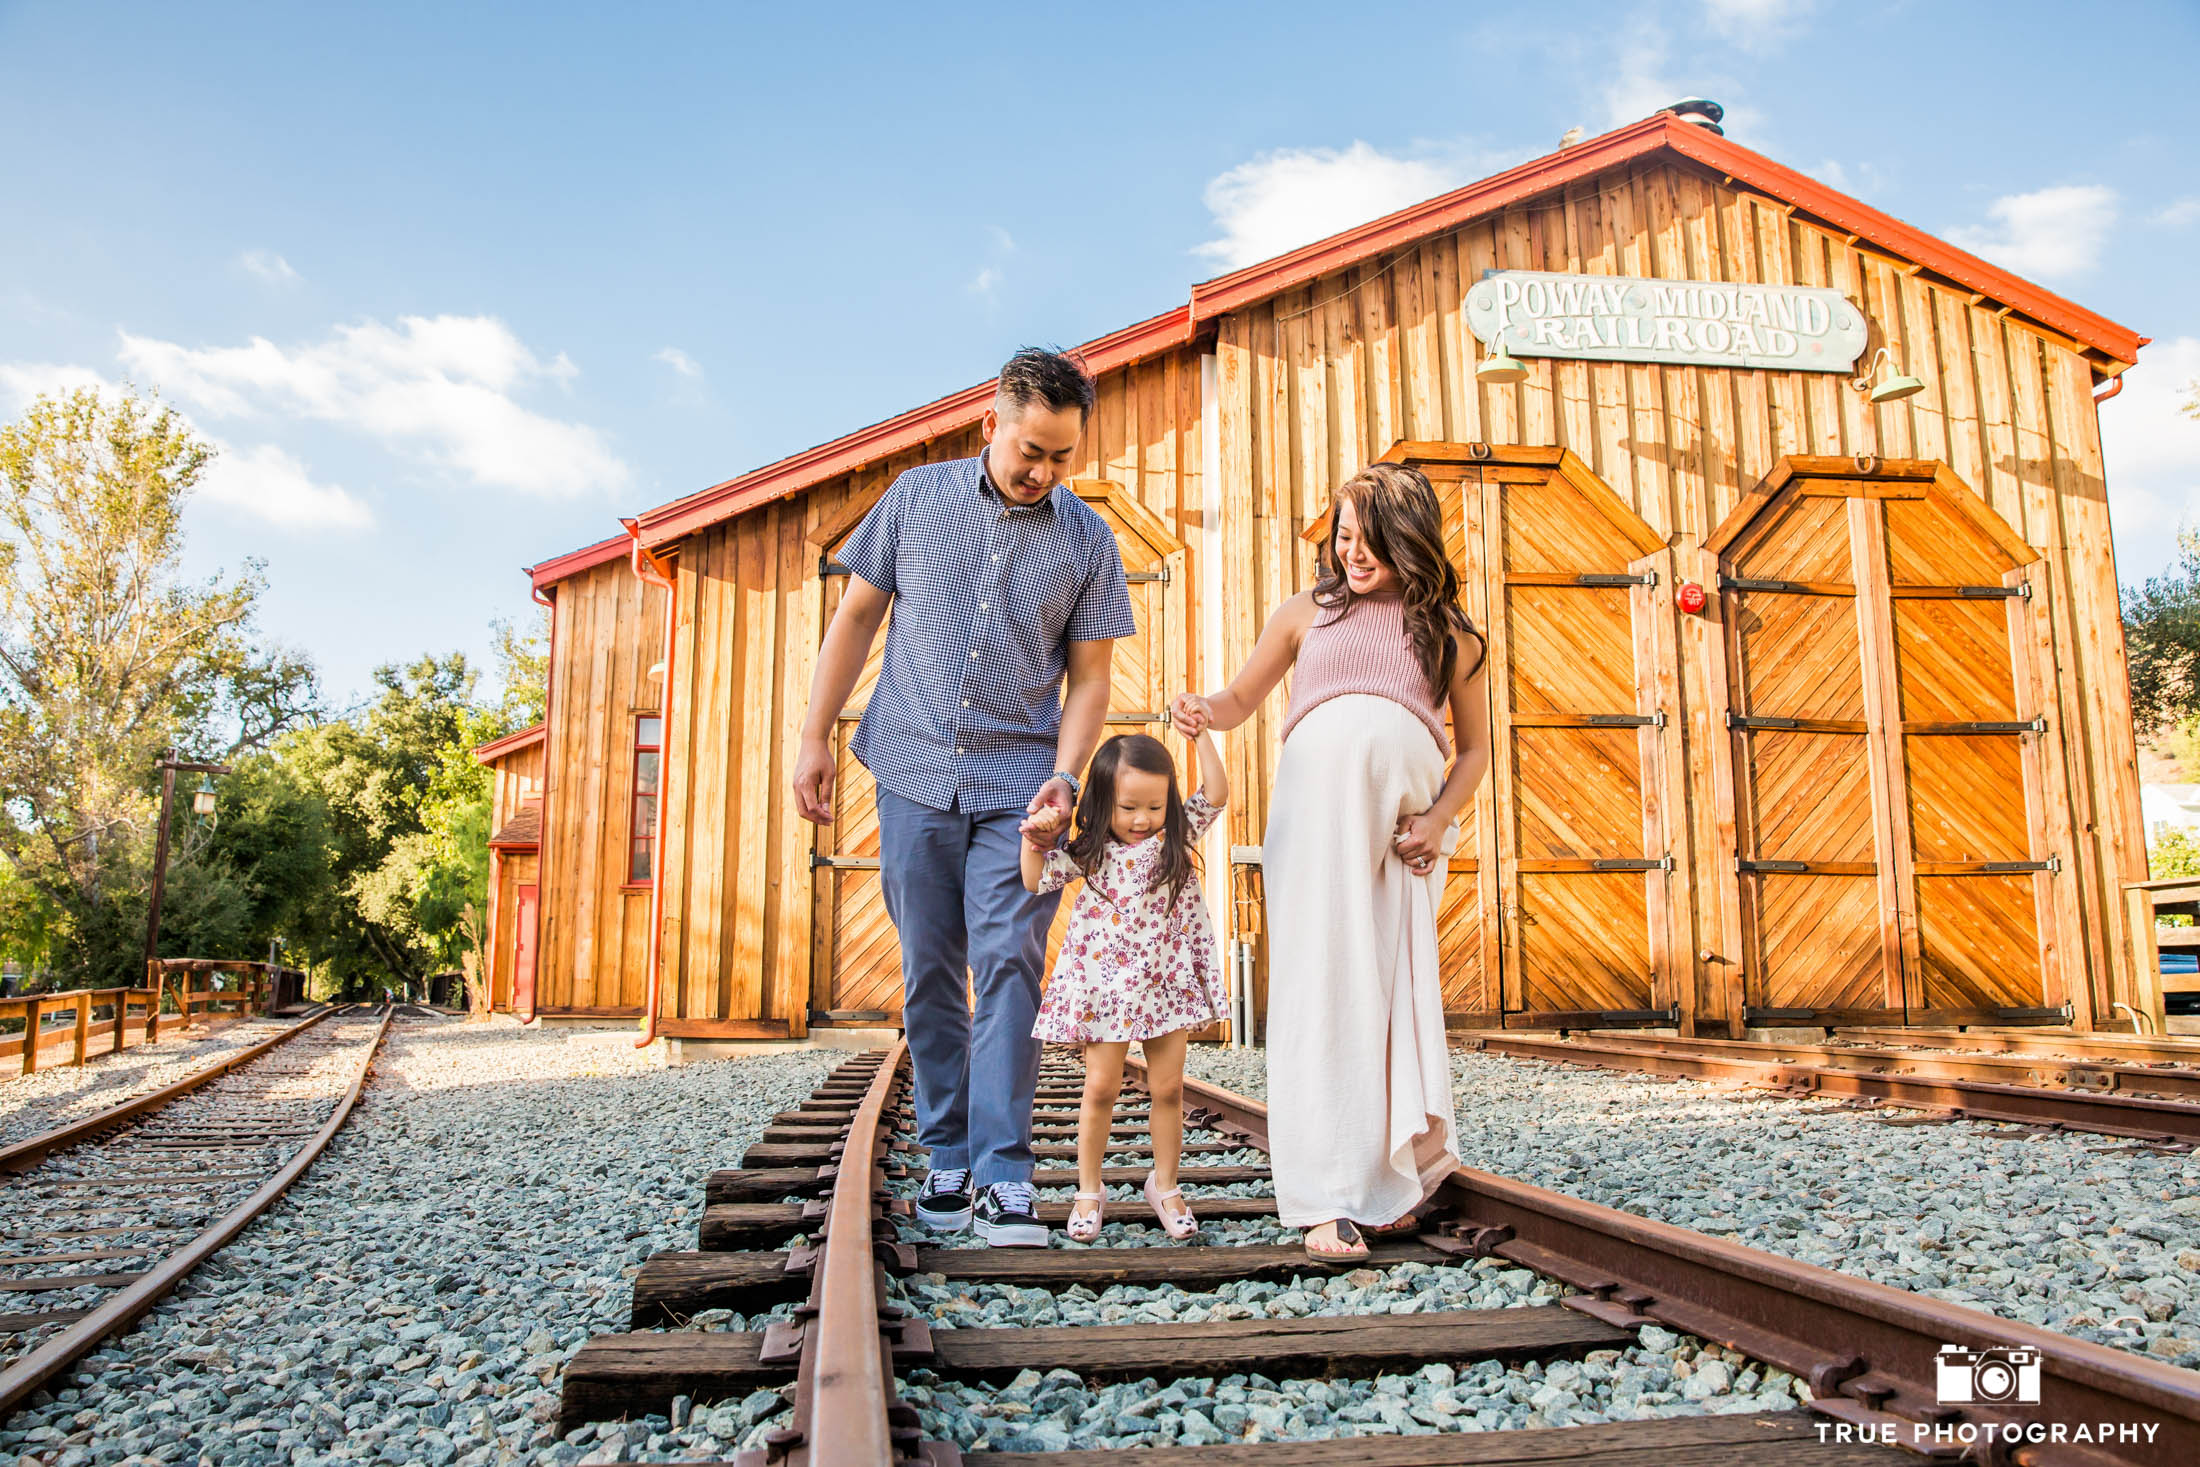 Family session strolling along the train tracks